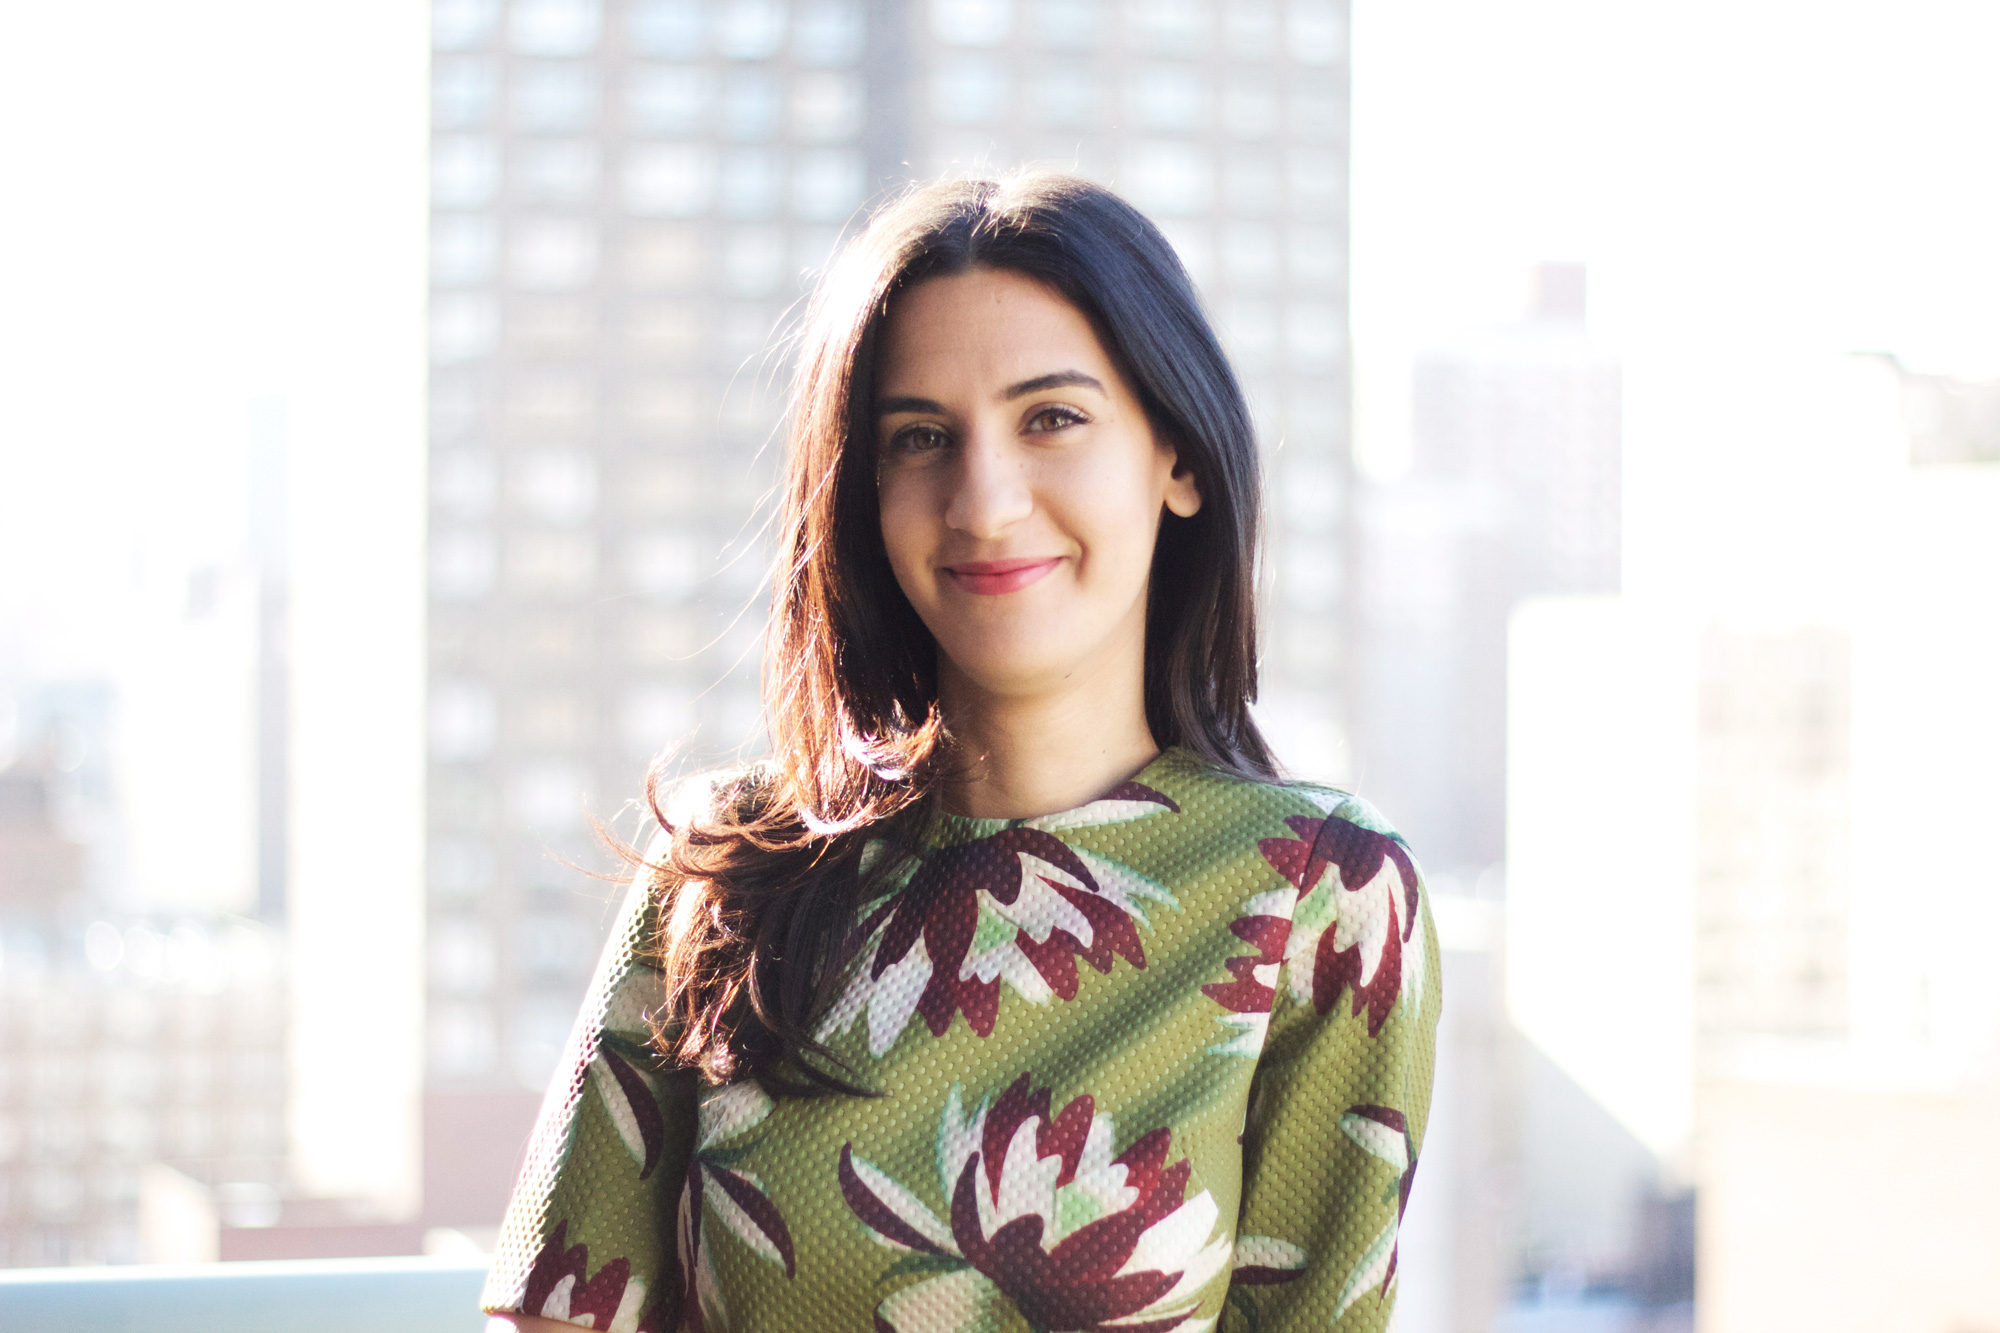 Natalie Zfat talks careers with The Lifestyle Edit